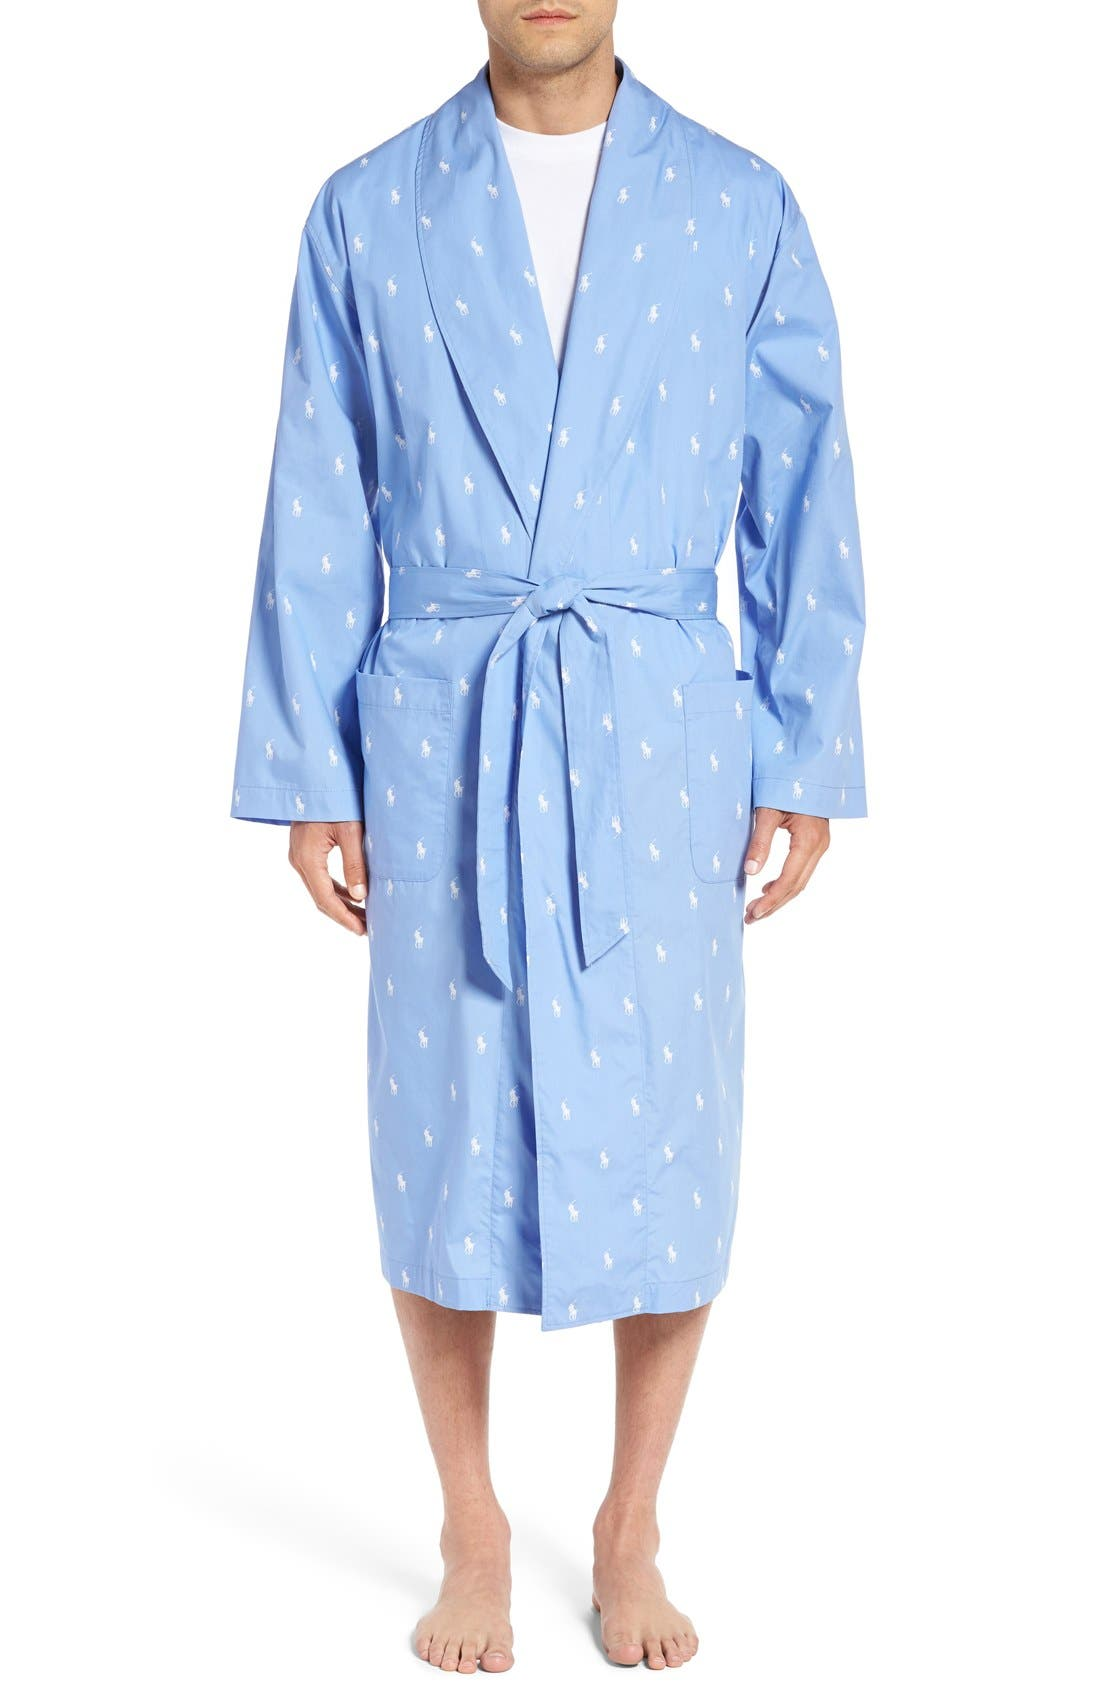 POLO RALPH LAUREN,                             'Polo Player' Cotton Robe,                             Main thumbnail 1, color,                             BEACH BLUE